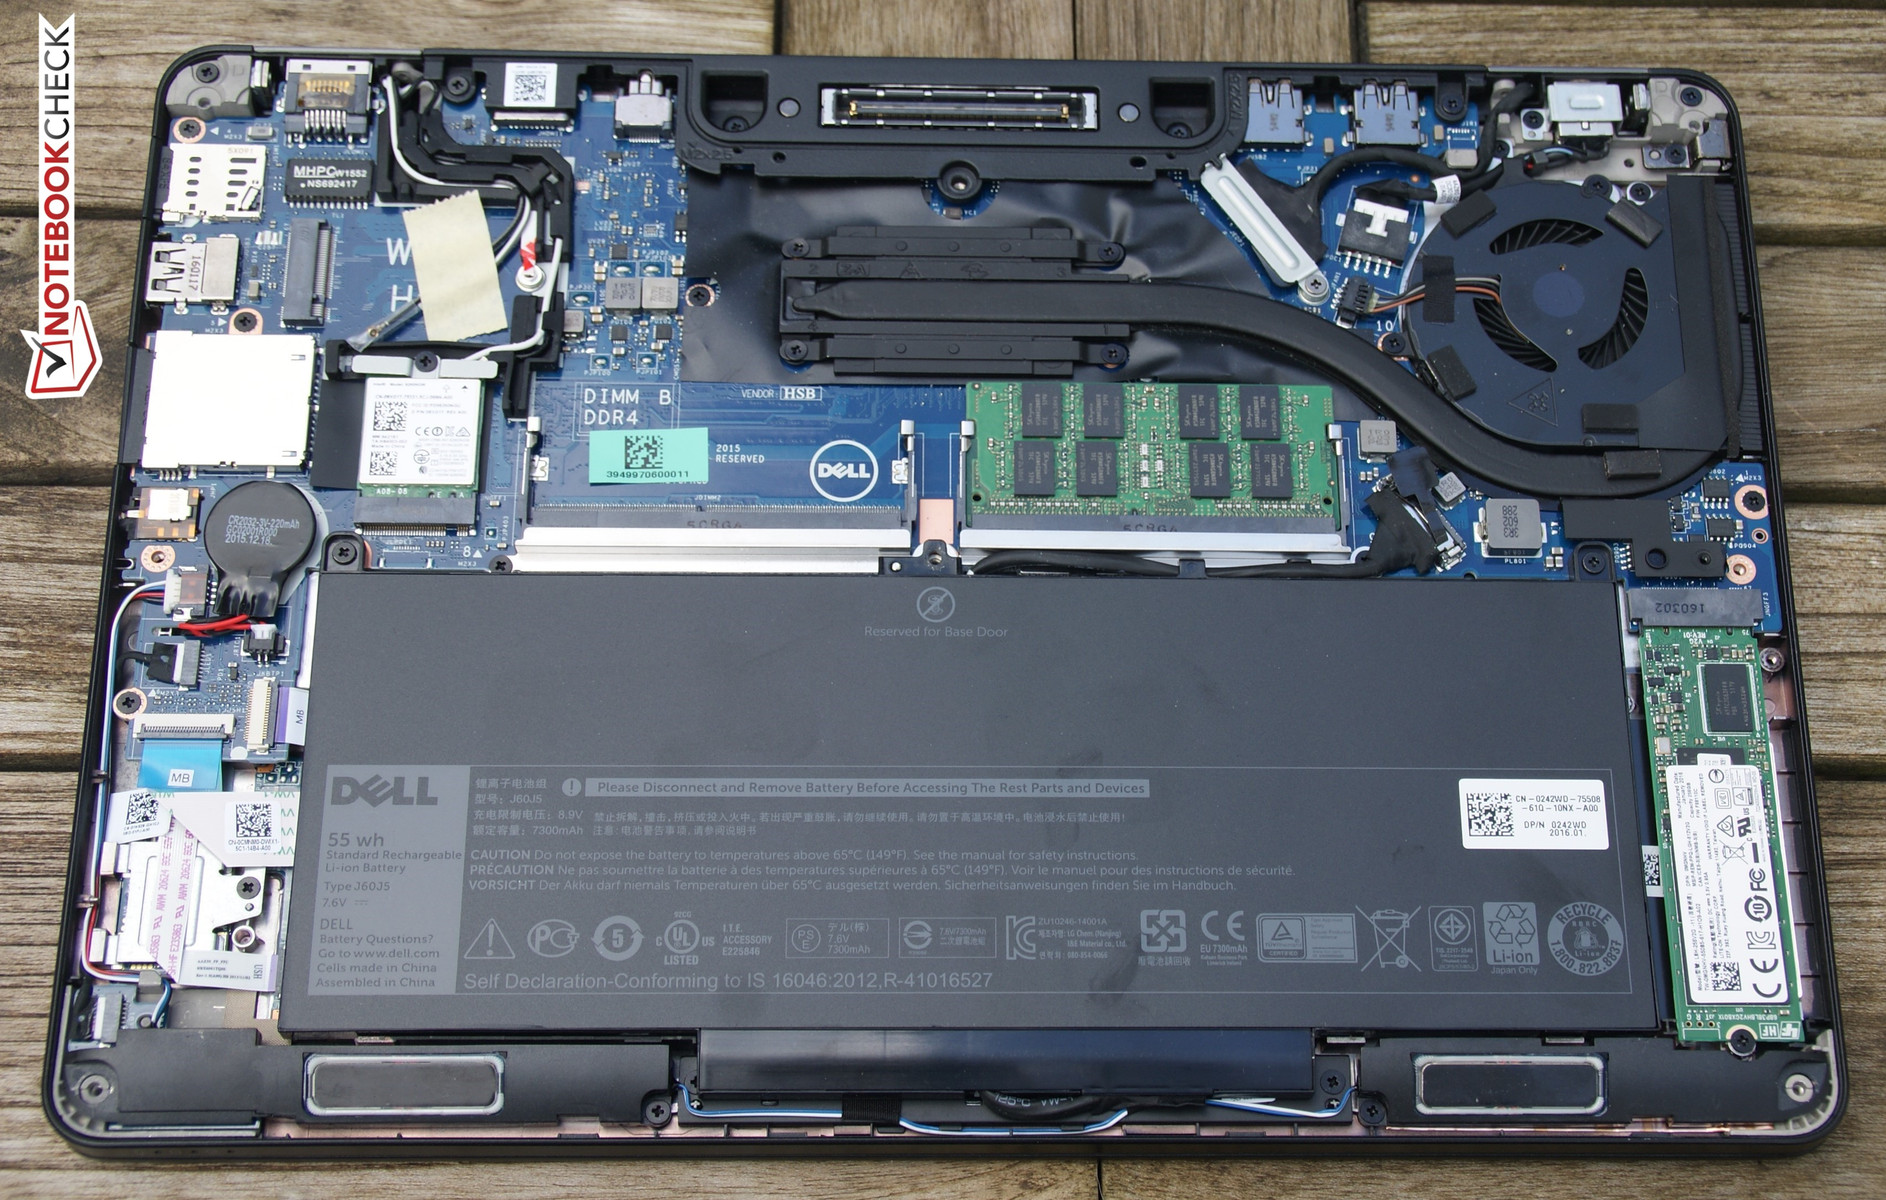 Dell Latitude 12 E7270 Notebook Review Reviews Once You Have Ascertained There Is No Power Running Install The Innards